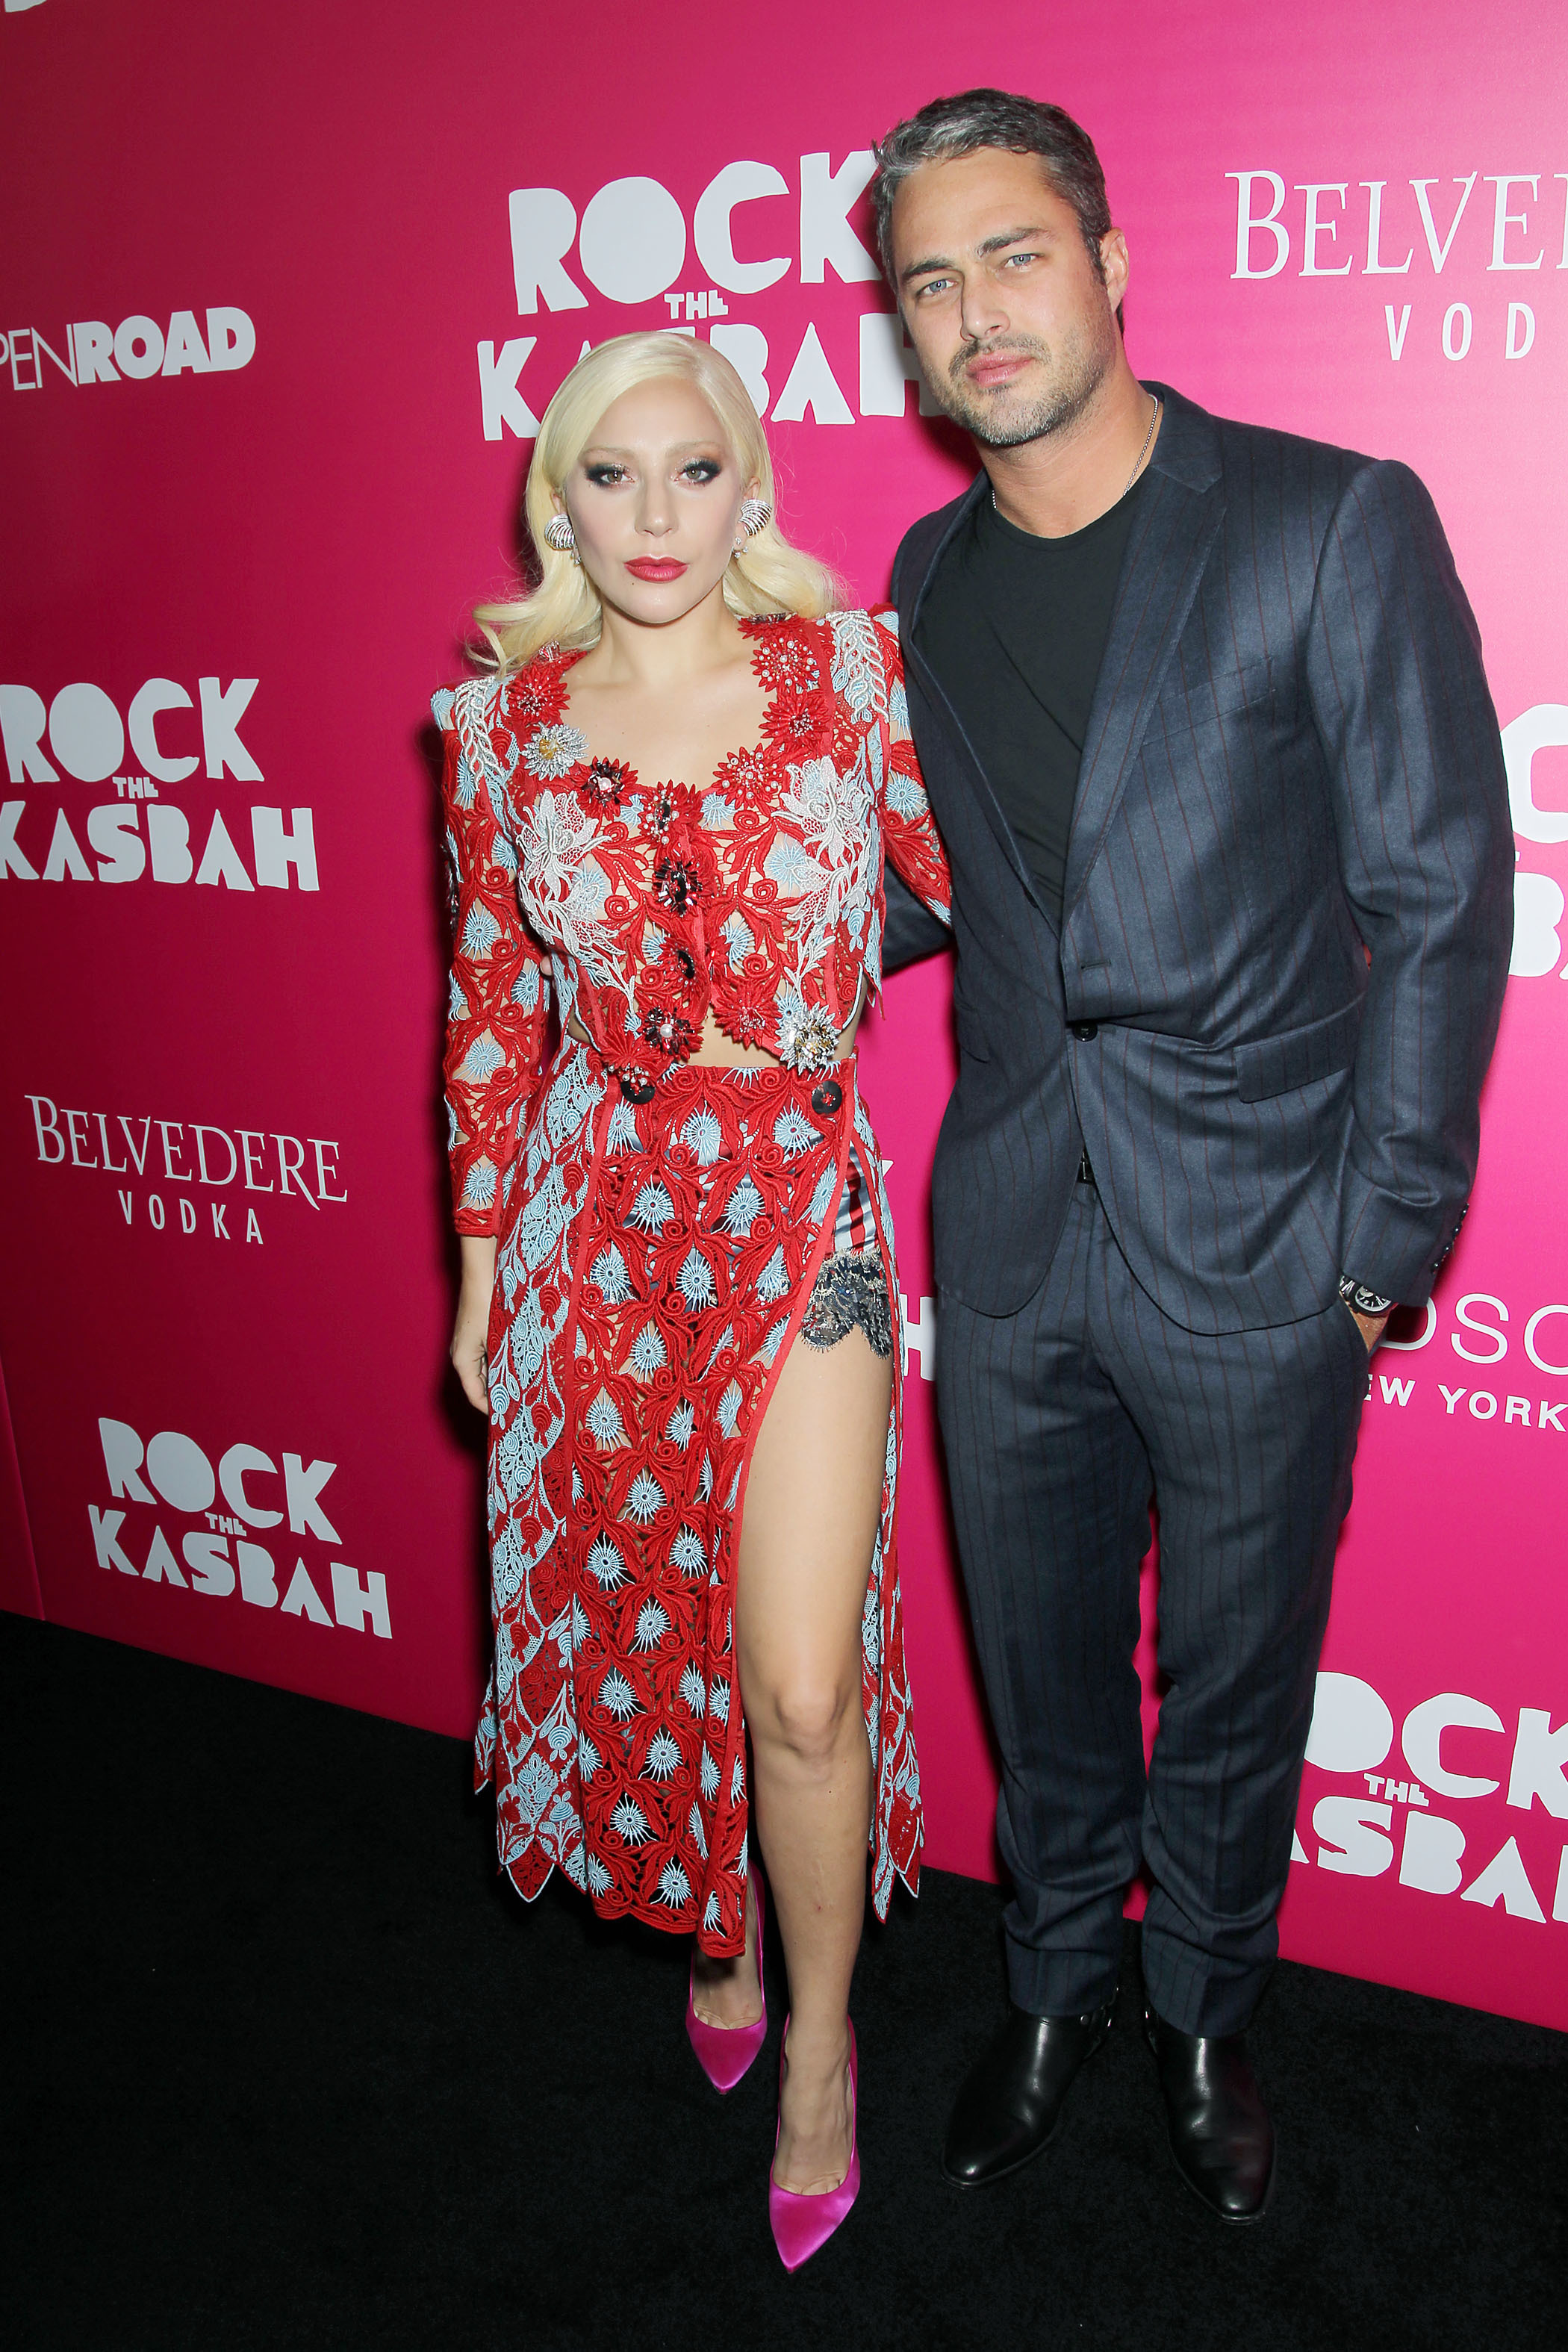 """Lady Gaga and Taylor Kinney attend the premiere of """"Rock the Kasbah"""" in New York City on Oct. 19, 2015."""